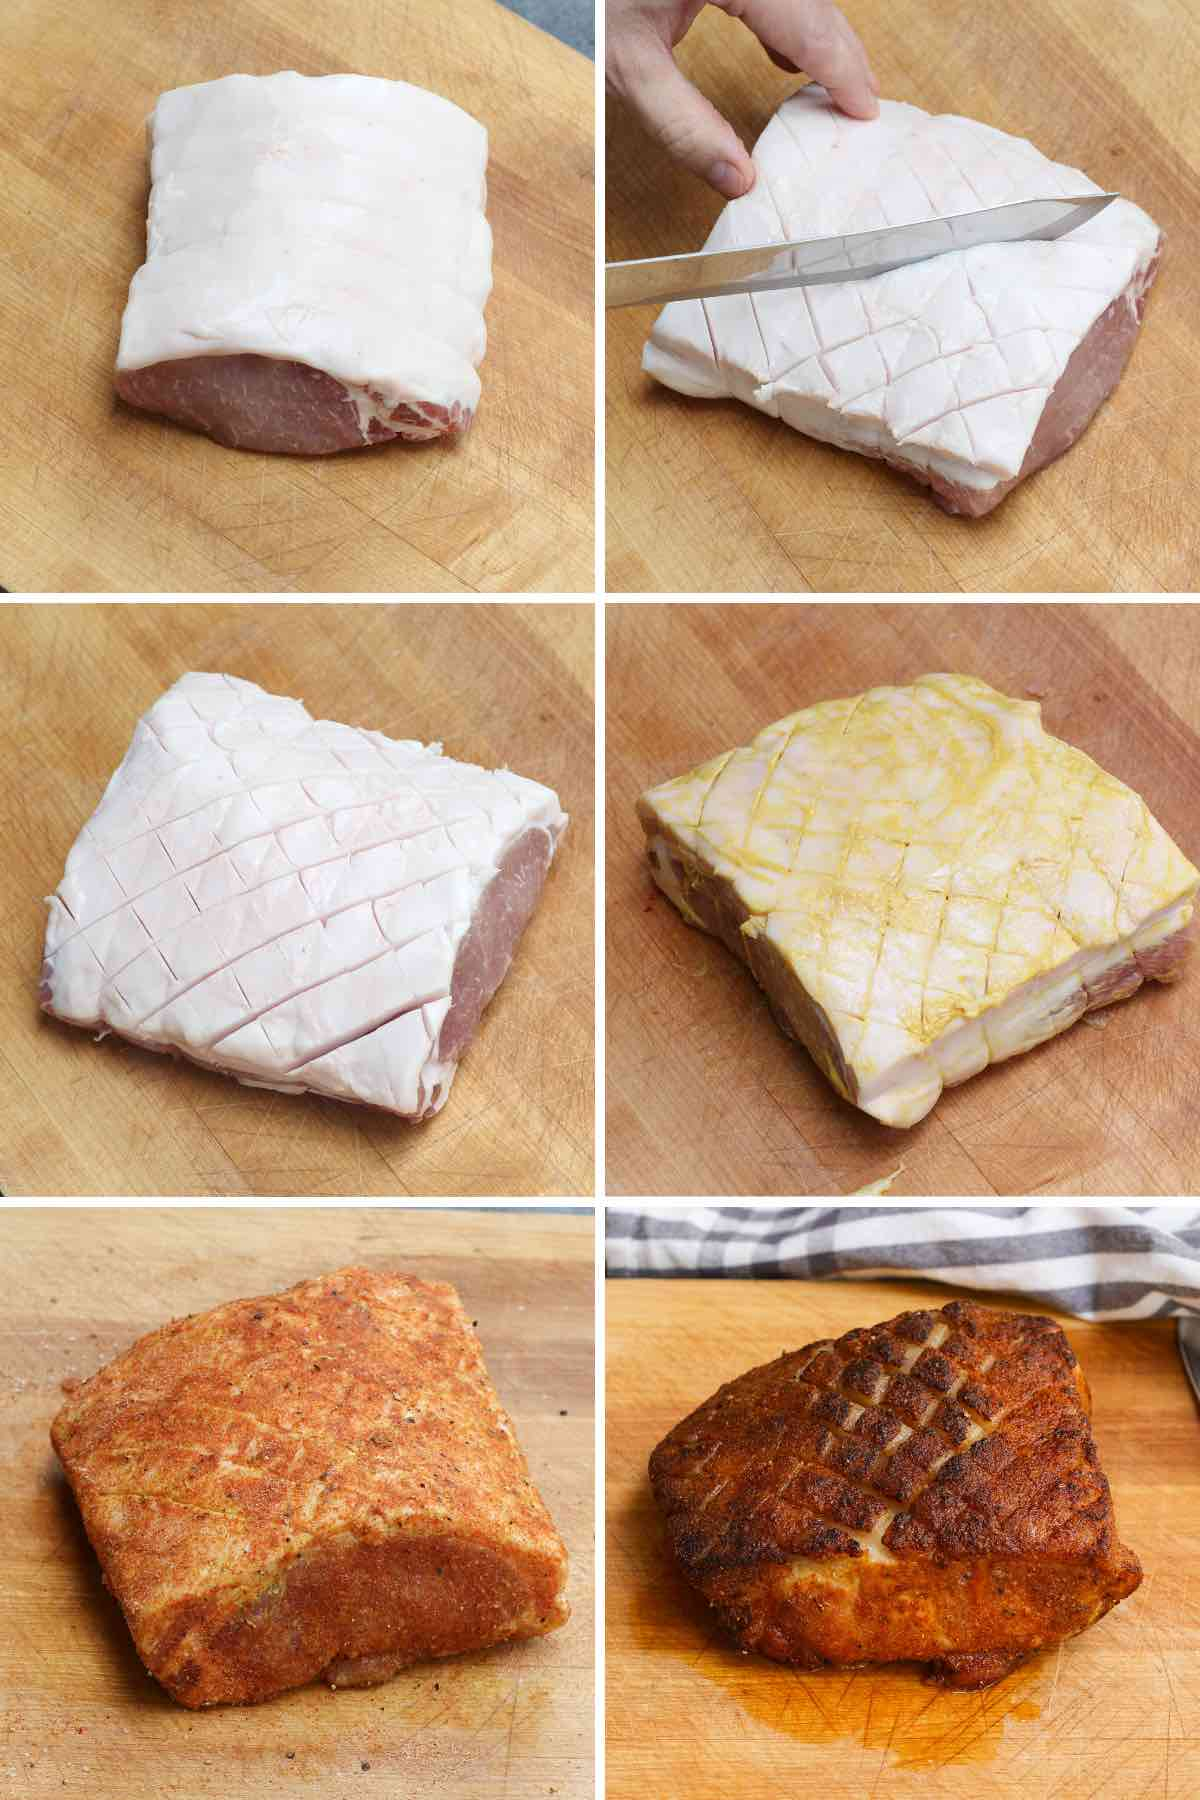 Key steps in preparing a pork loin for smoking